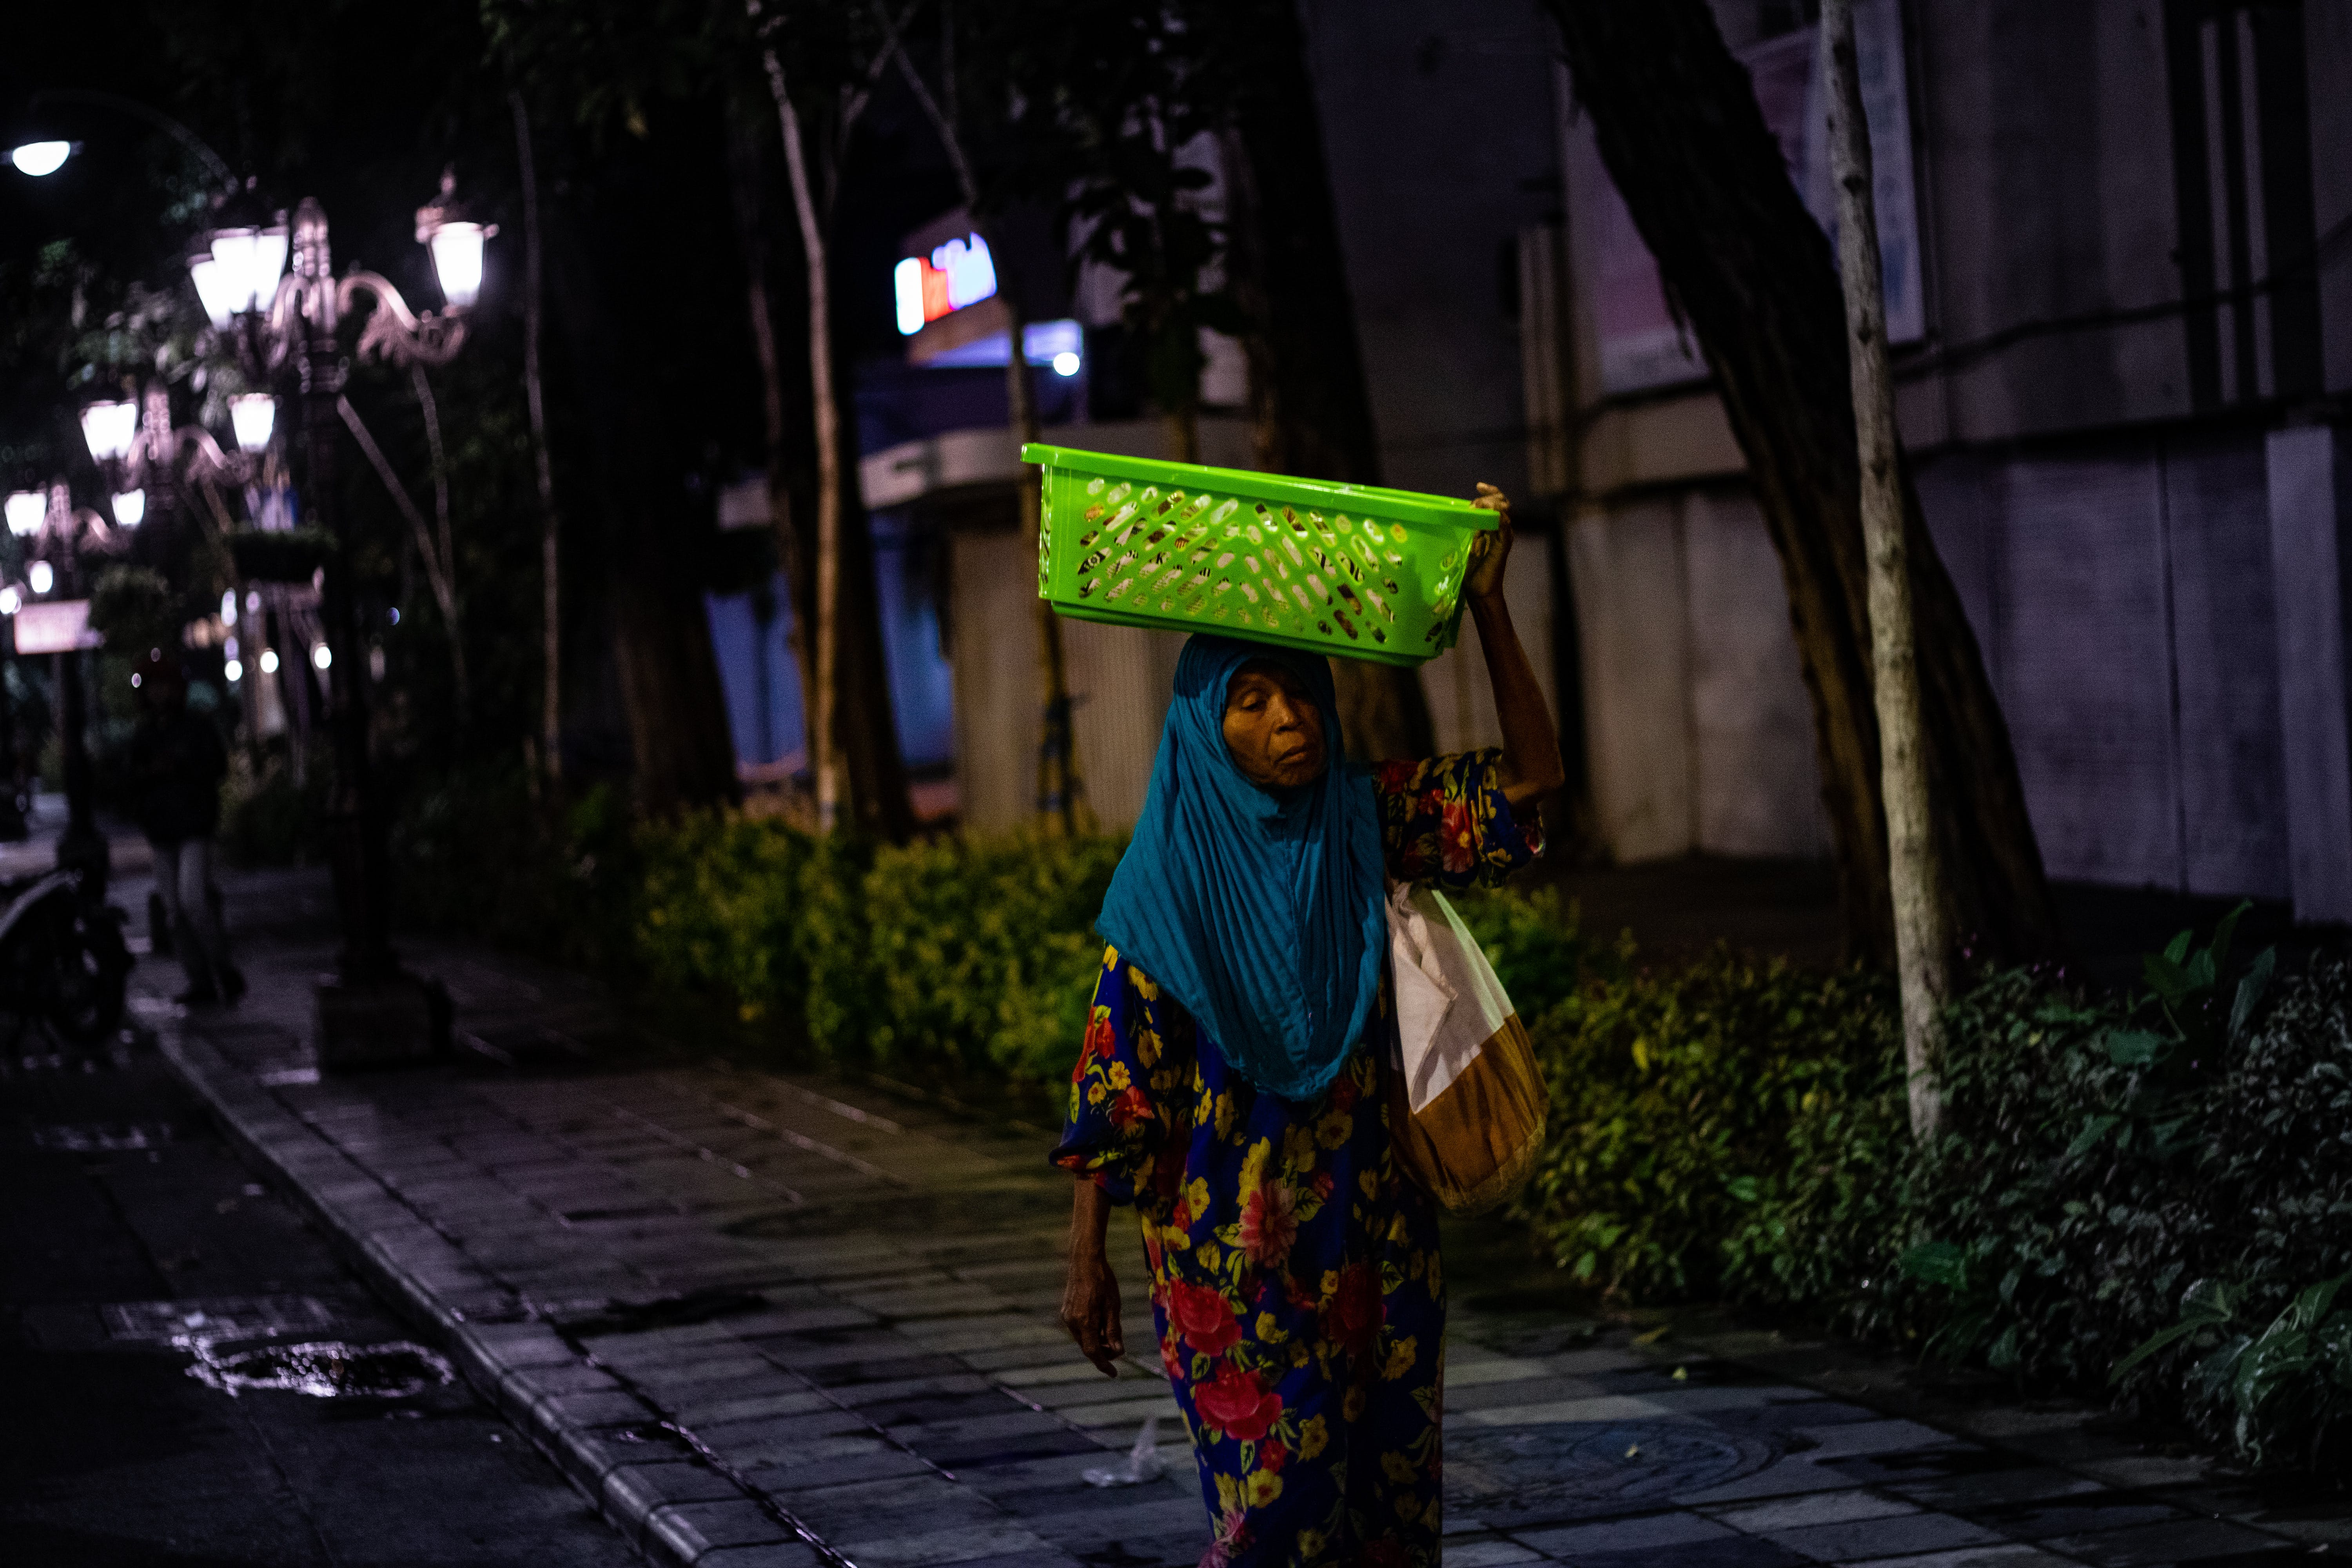 Woman Carrying Green Basket On Her Head